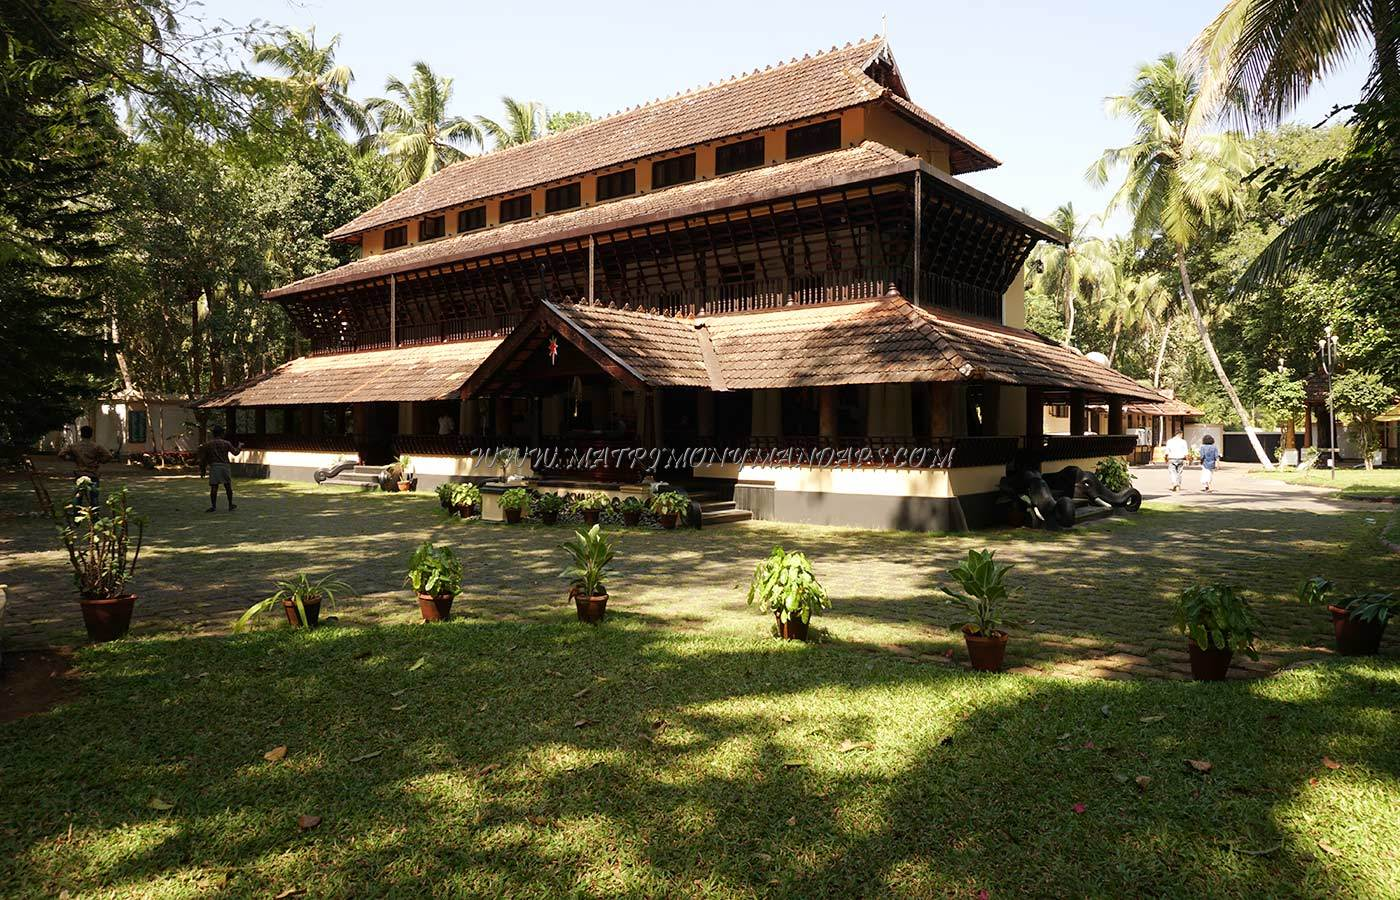 Find the availability of the Kunnathur Mana Open Spe in Mammiyoor, Guruvayoor and avail special offers